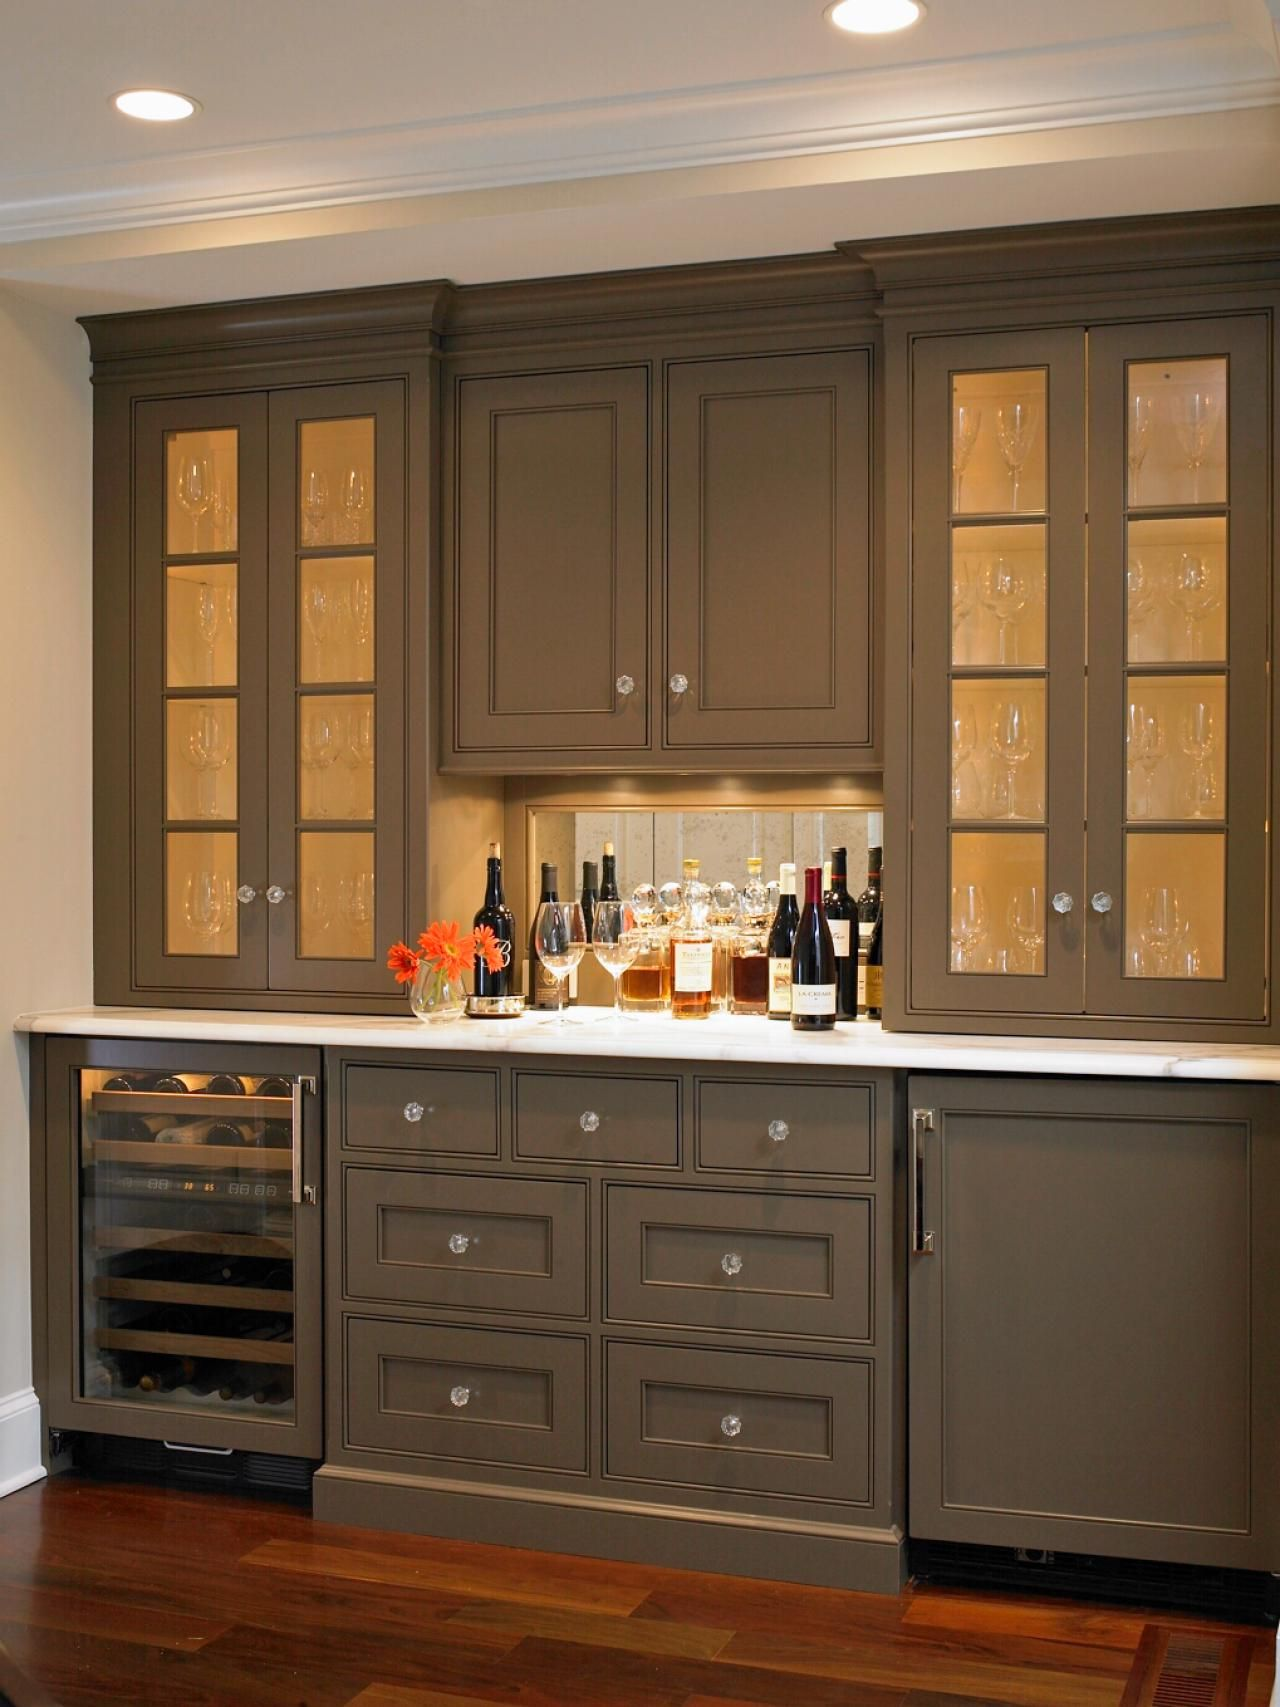 find a kitchen designer wooden cabinets wholesale best pictures of cabinet color ideas from top